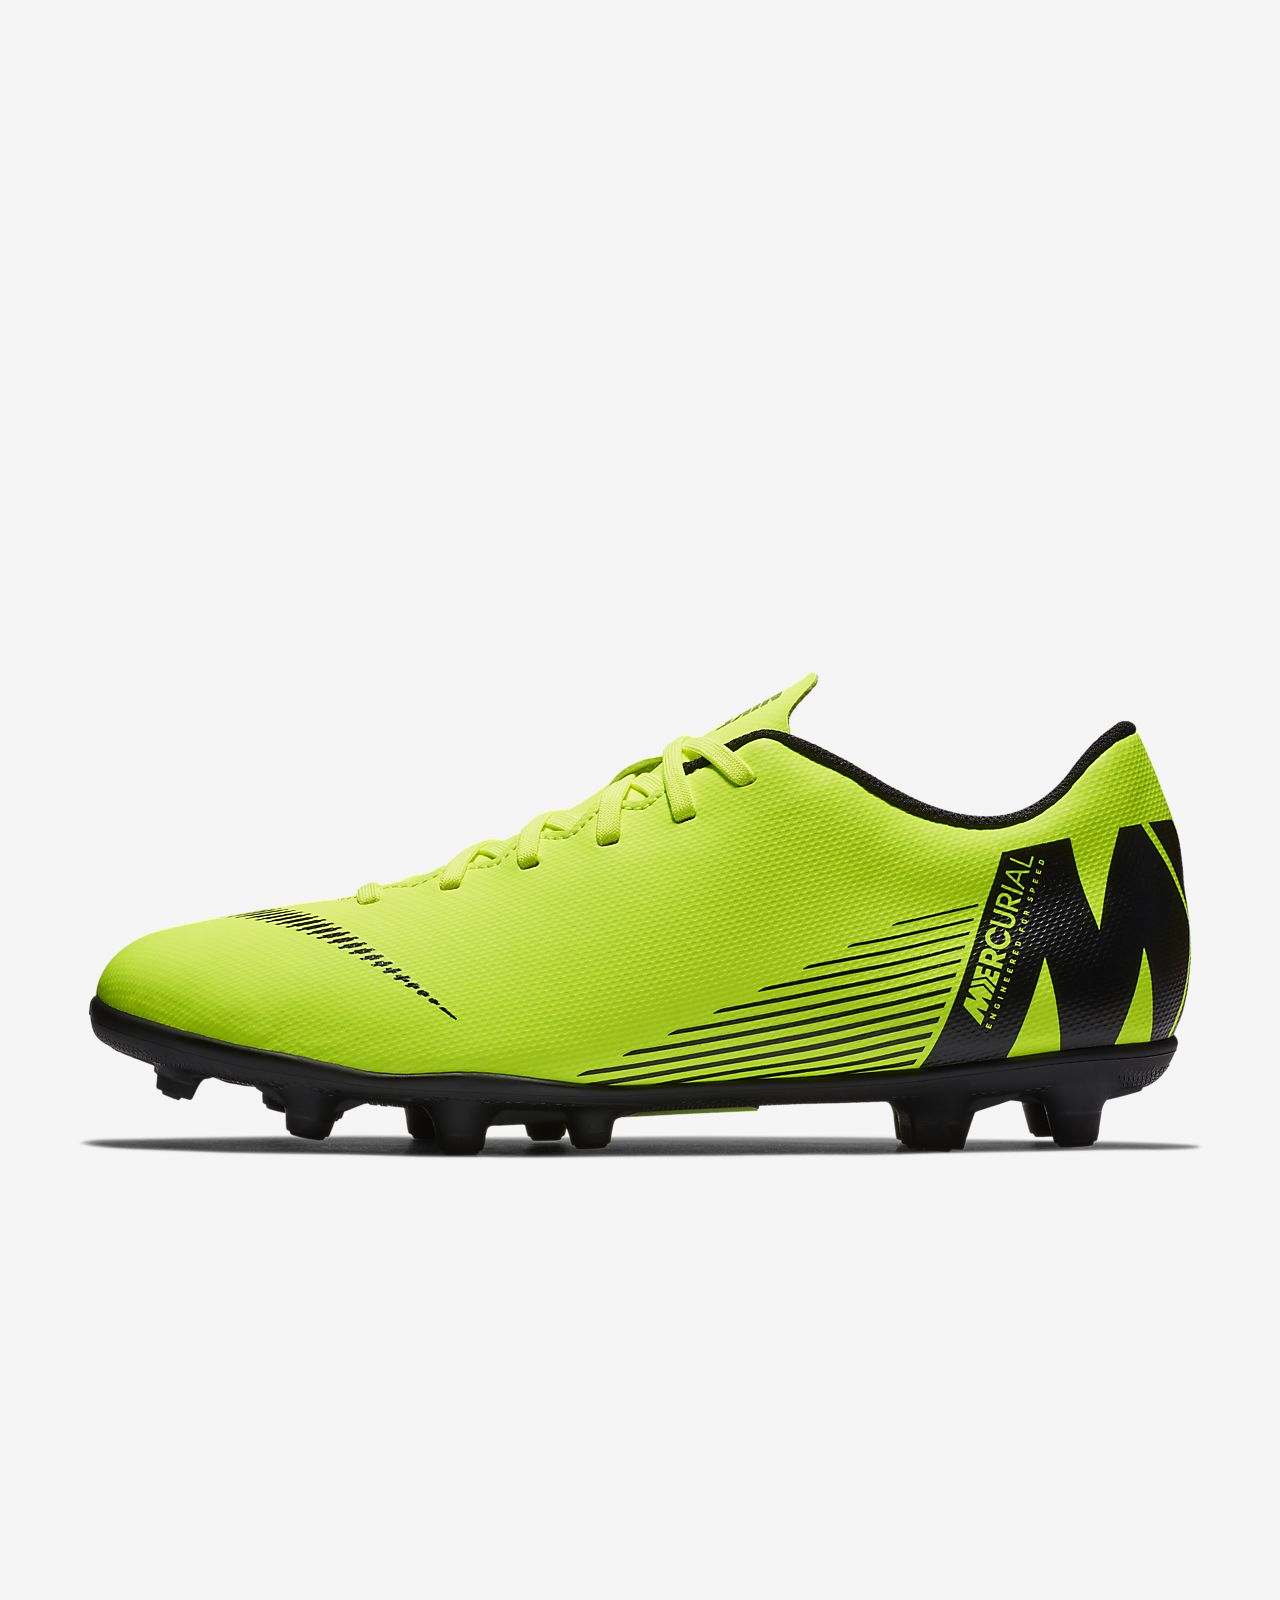 Nike Mercurial Vapor XII Club Multi,Ground Football Boot